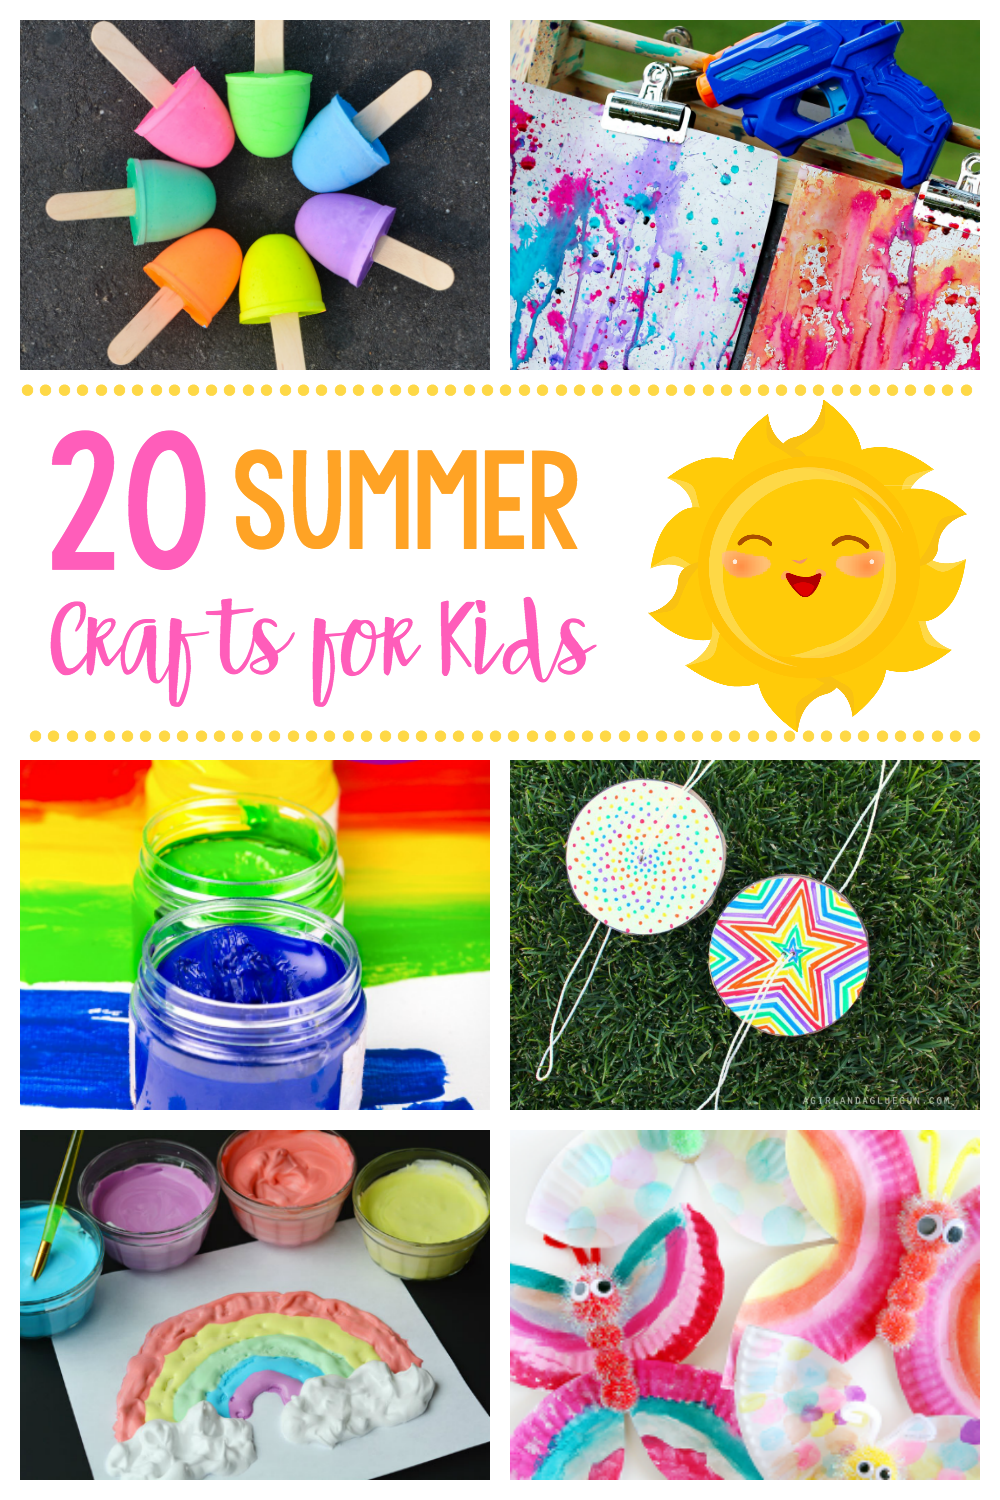 20 Fun & Simple Crafts for Kids-Great ideas to keep the kids busy this summer with fun activities and crafts for toddlers to teens! #summer #summerfun #kids #kidsactivities #kidscrafts #crafts